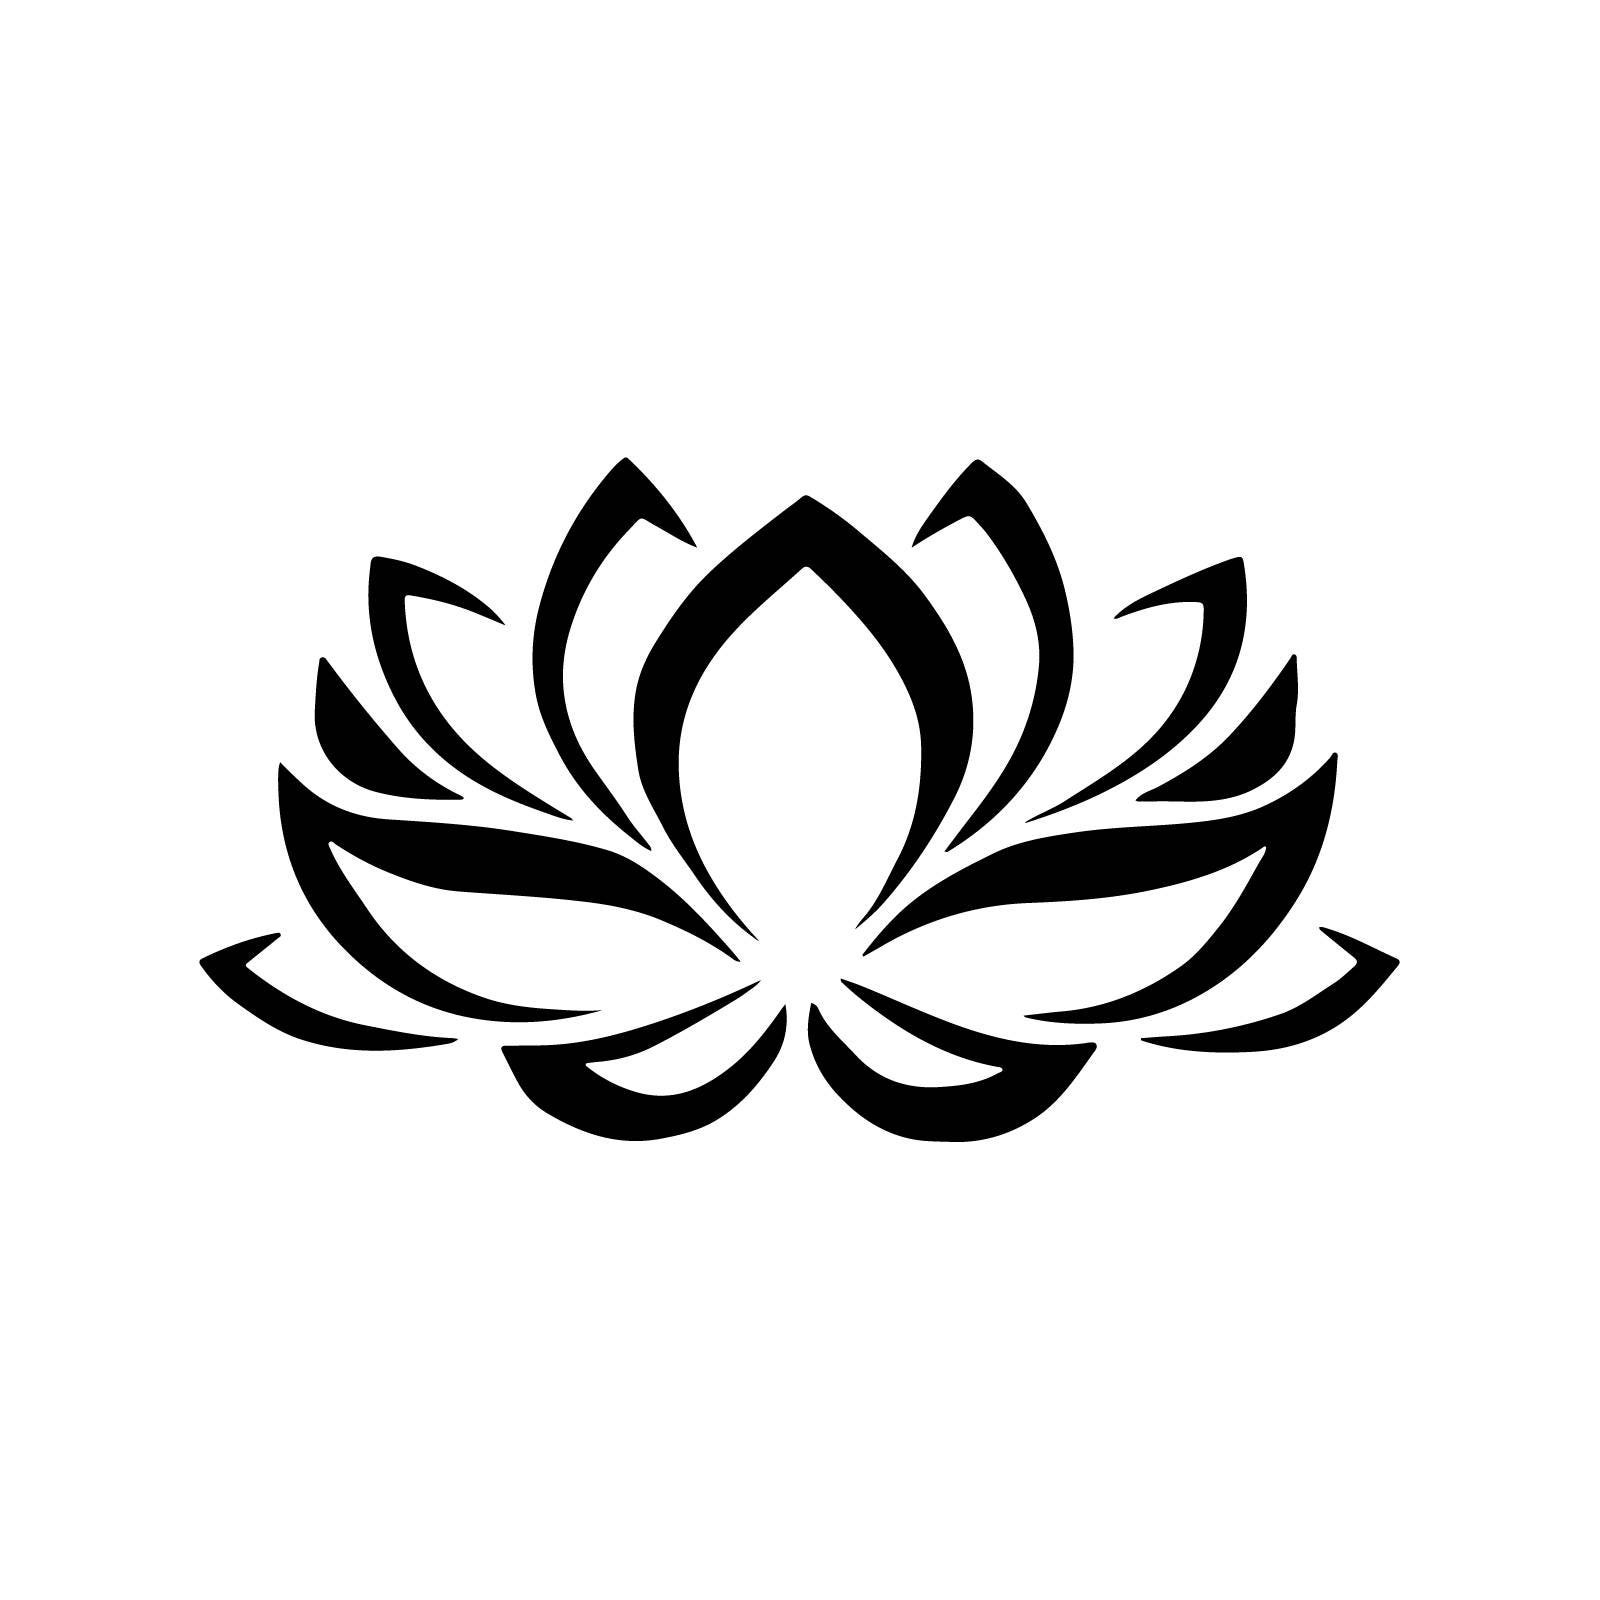 Stencil floral lotus flower stencil decoration 5 sizes svg pdf - Fleur de lotus symbole ...